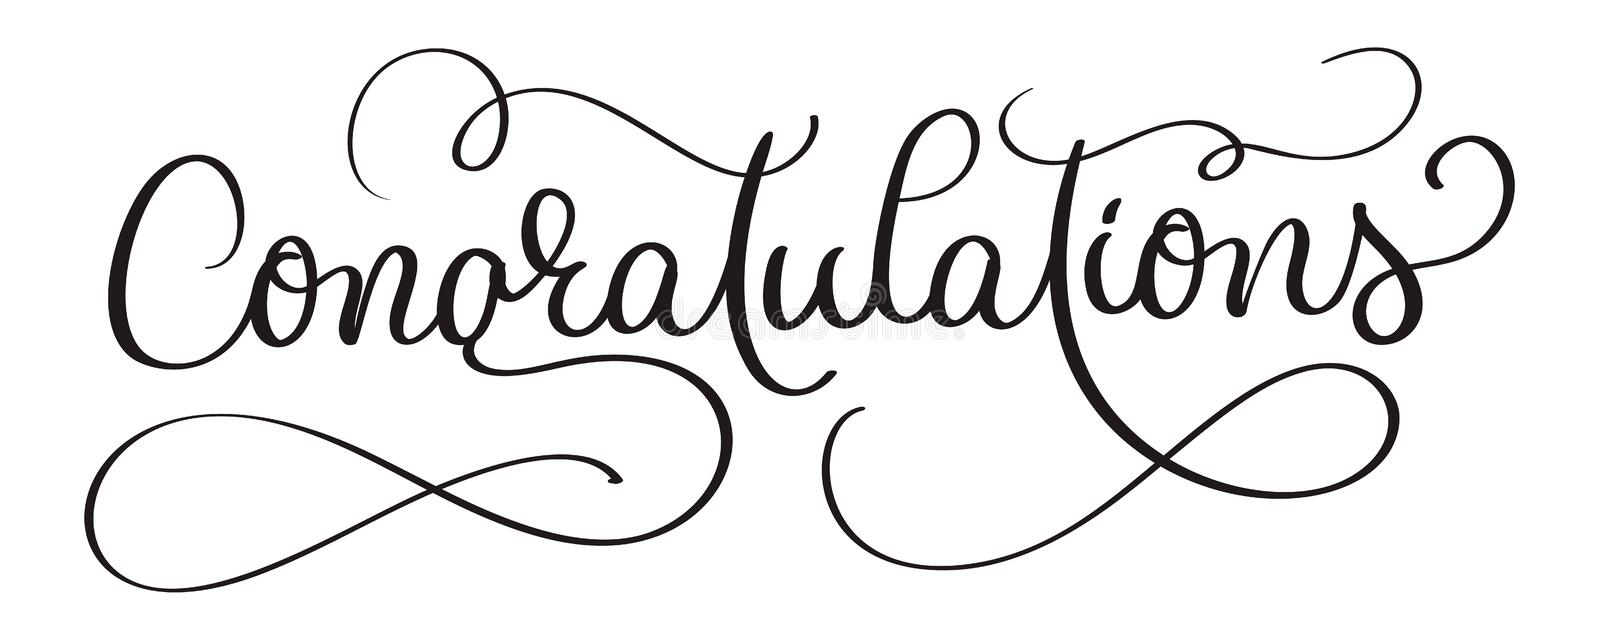 Congratulations calligraphy Lettering vector Hand written text on white background. Calligraphic banner royalty free illustration